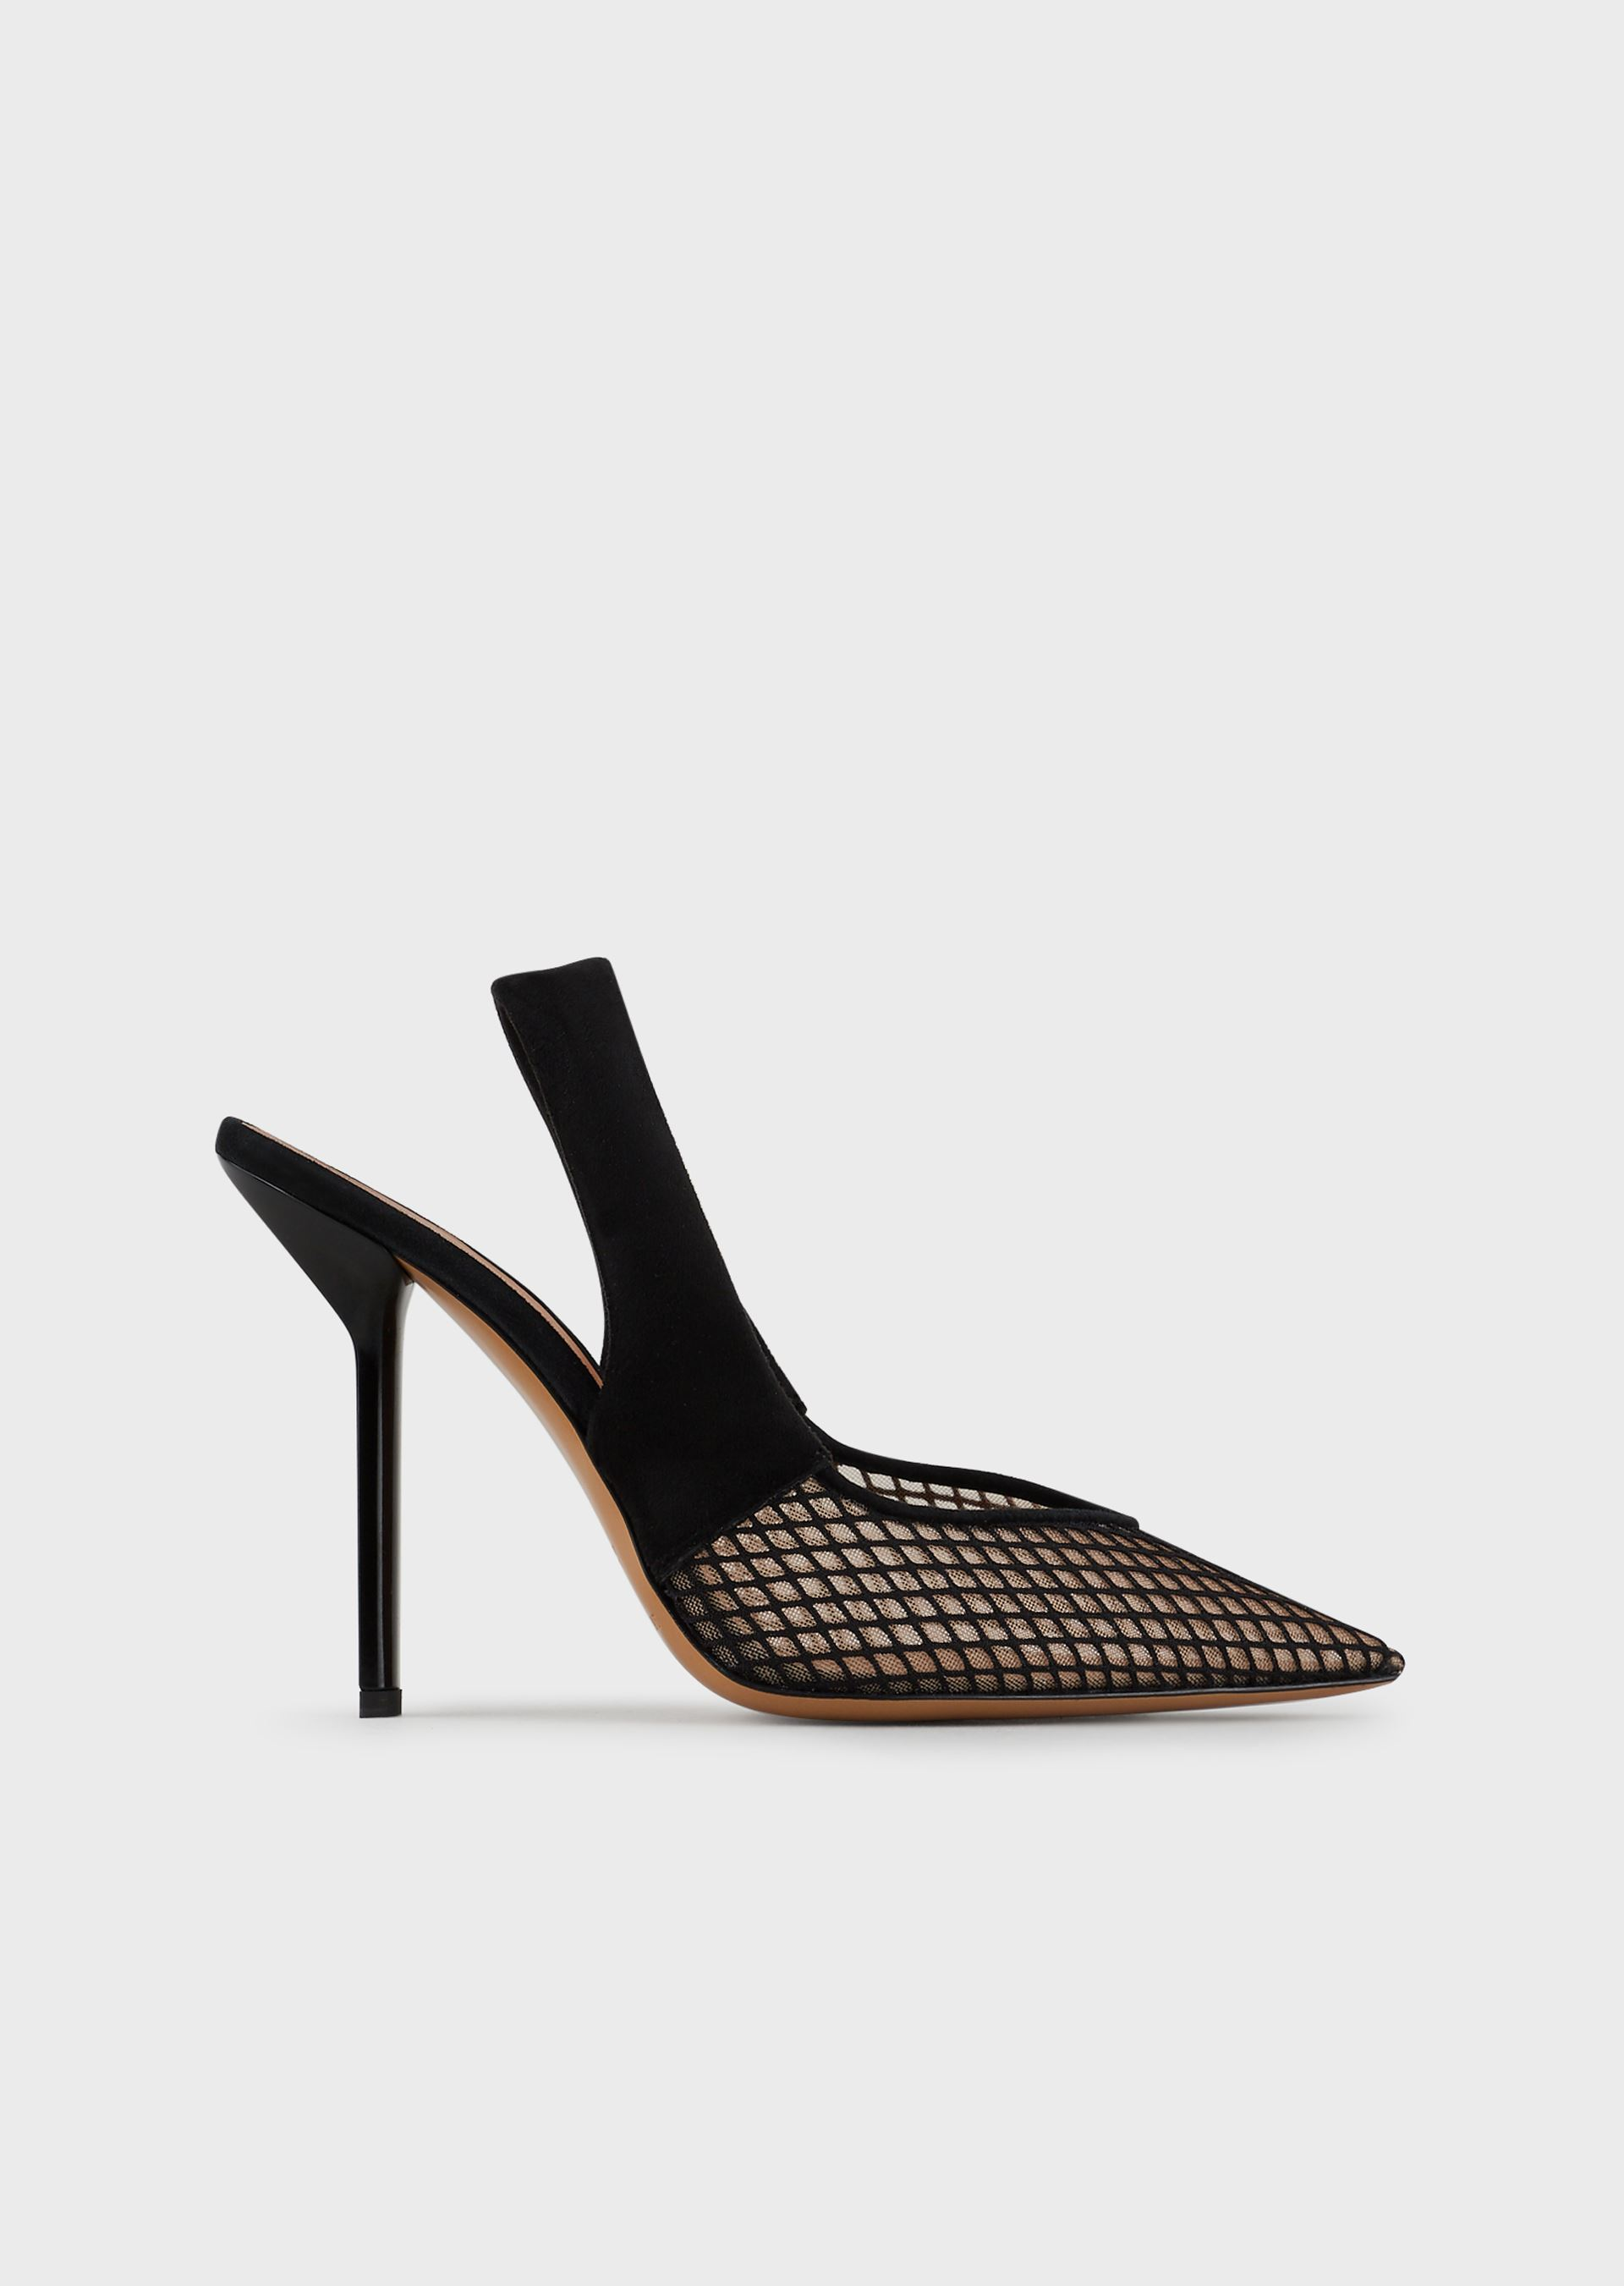 EMPORIO ARMANI Suede slingback court shoes with mesh-covered toe